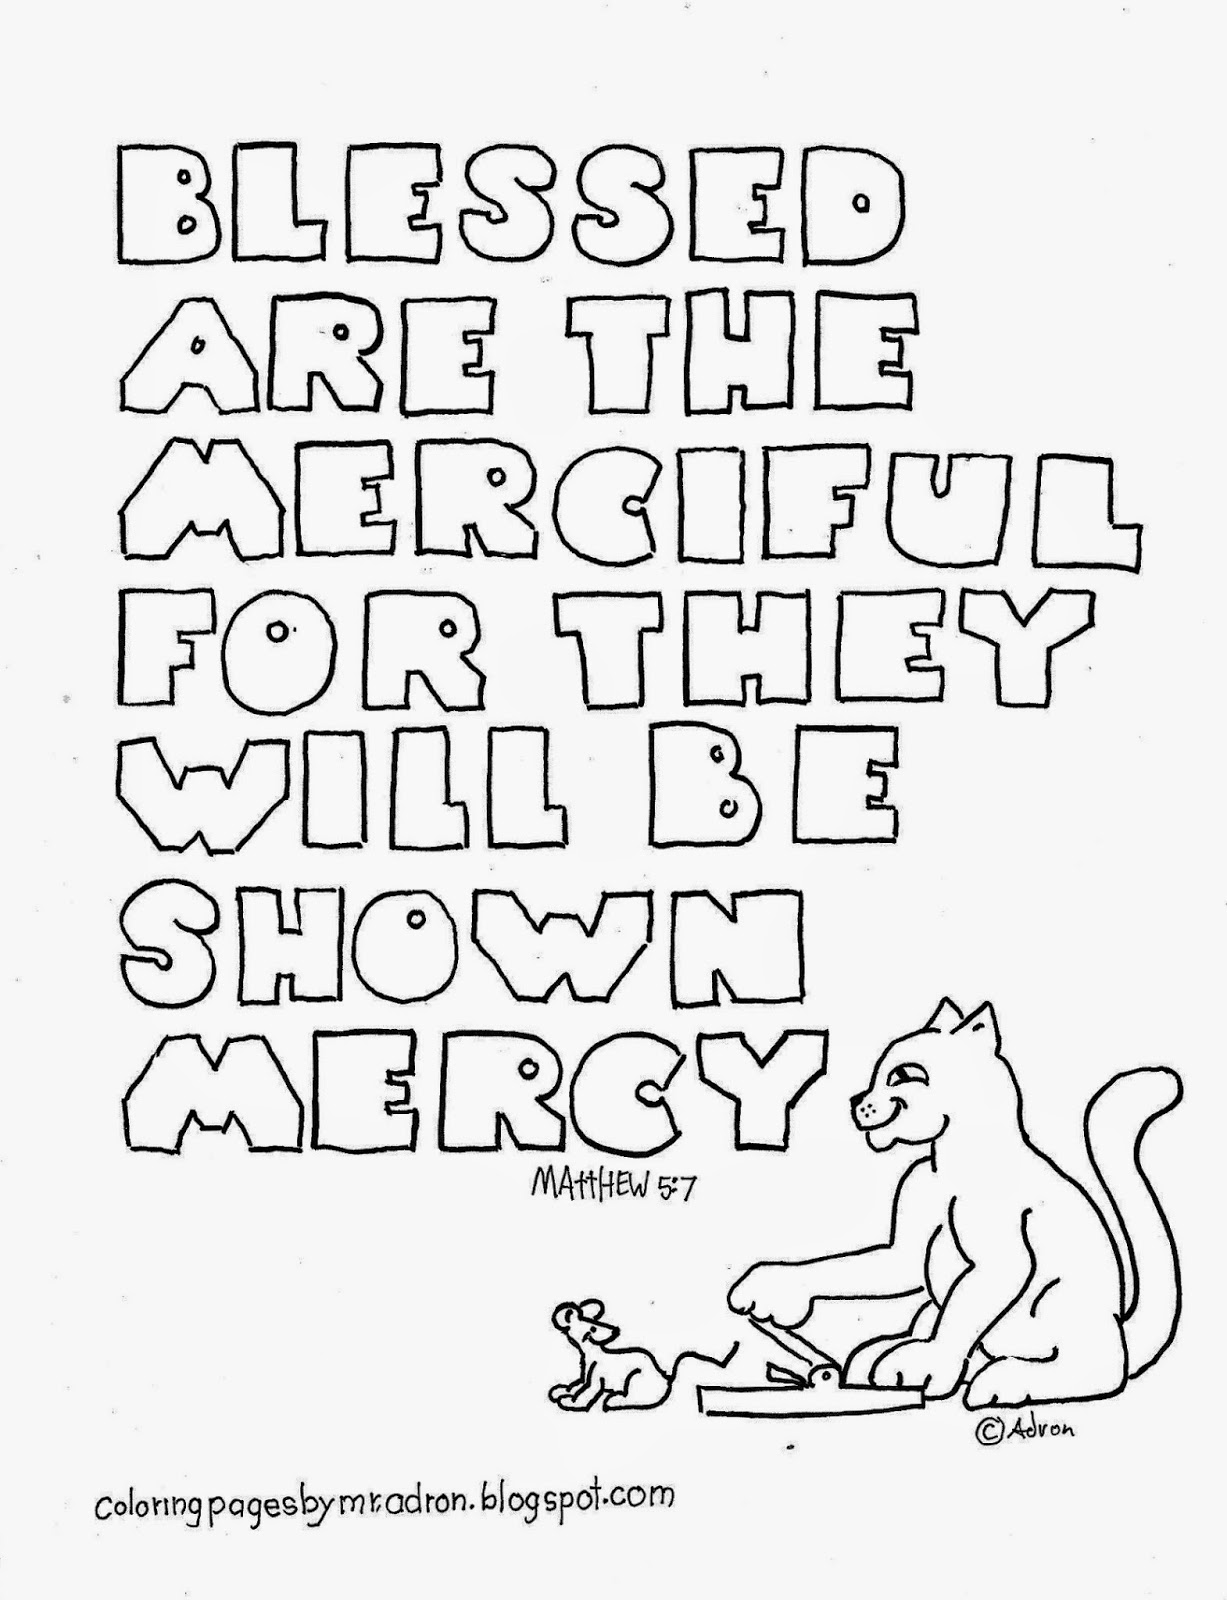 Illustration of Matthew 5:7 to print and color.